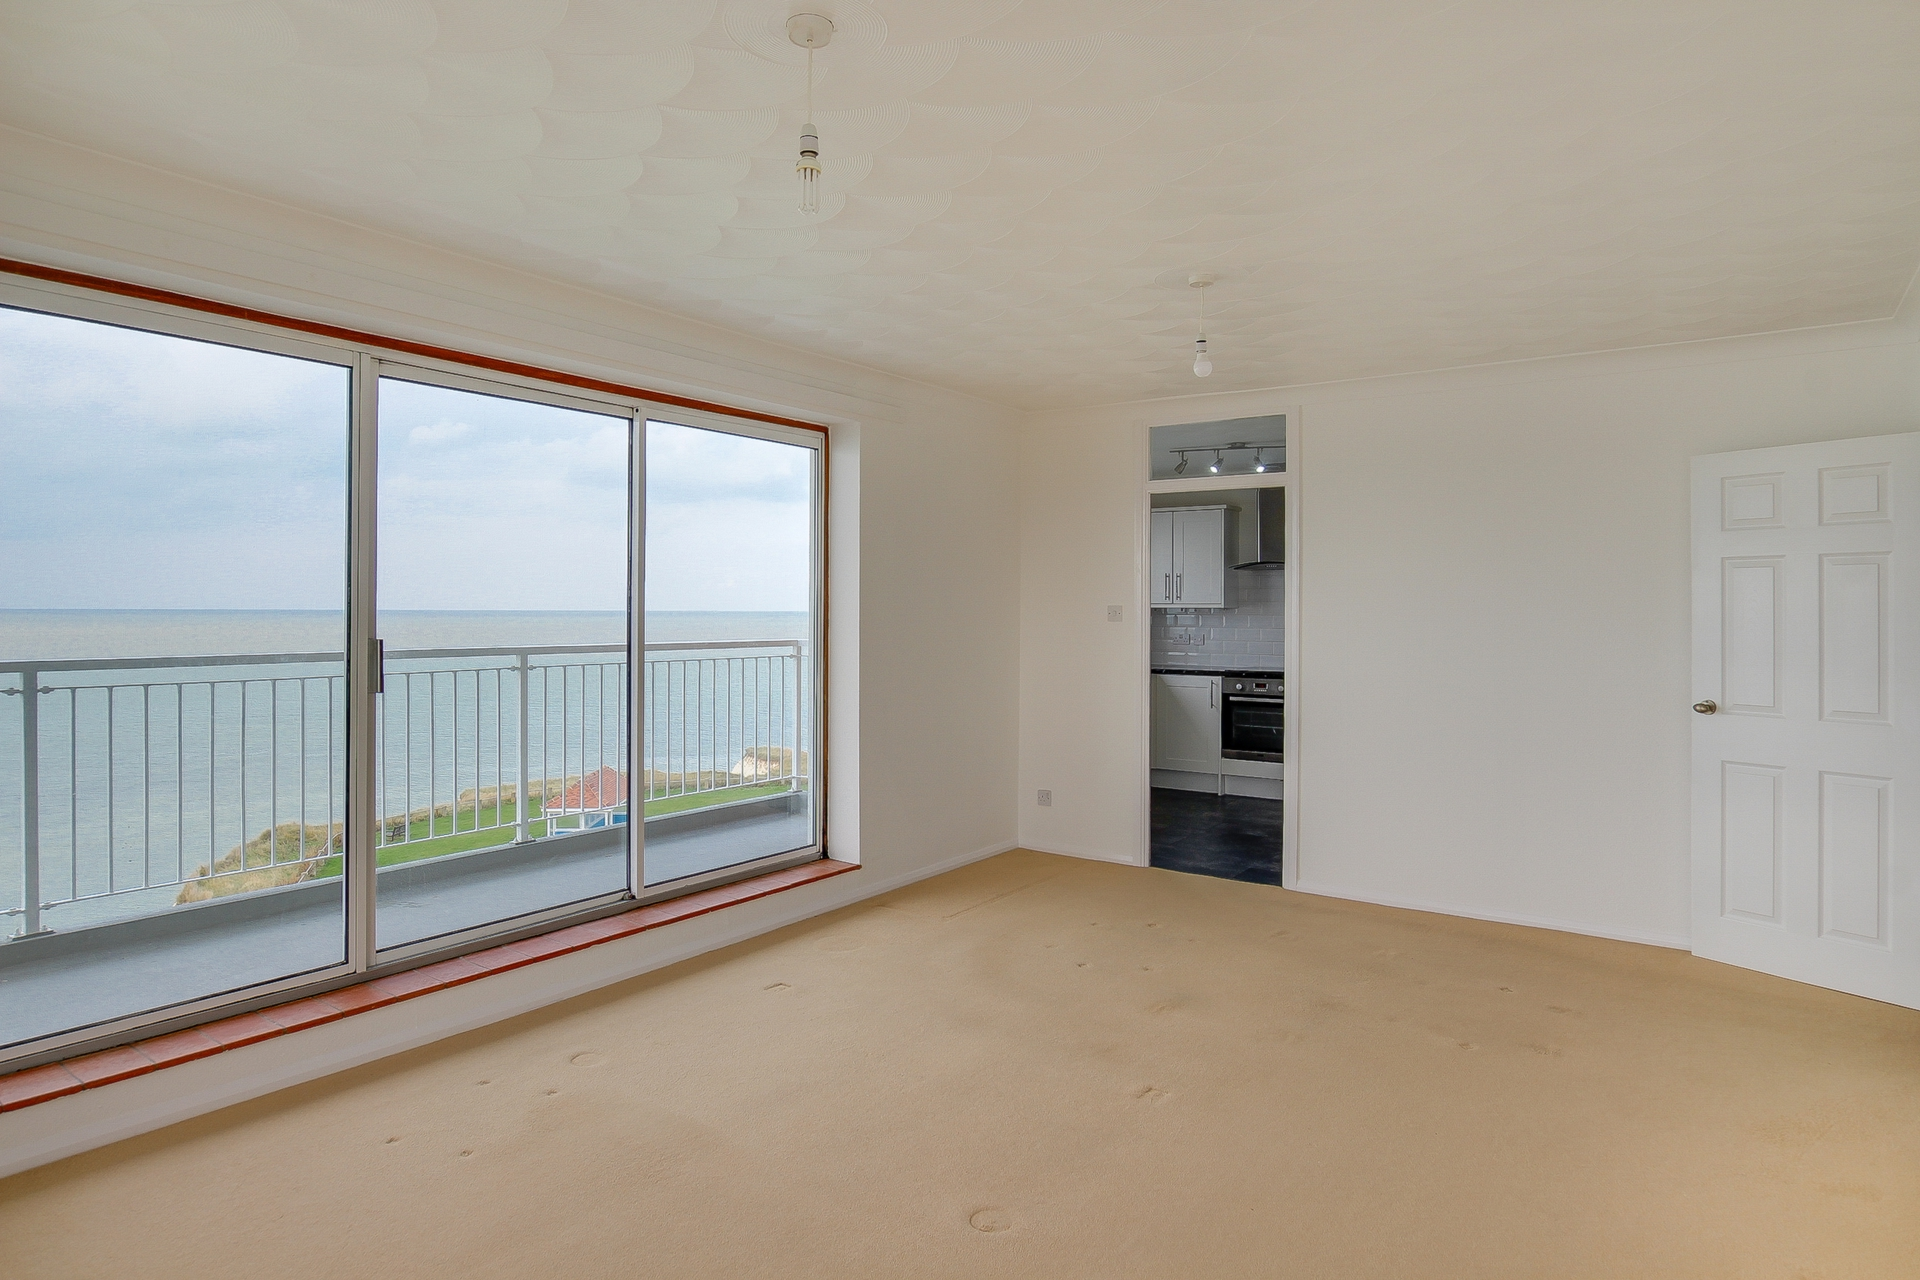 2 bed flat to rent in The Parade, Minnis Bay, CT7  - Property Image 3